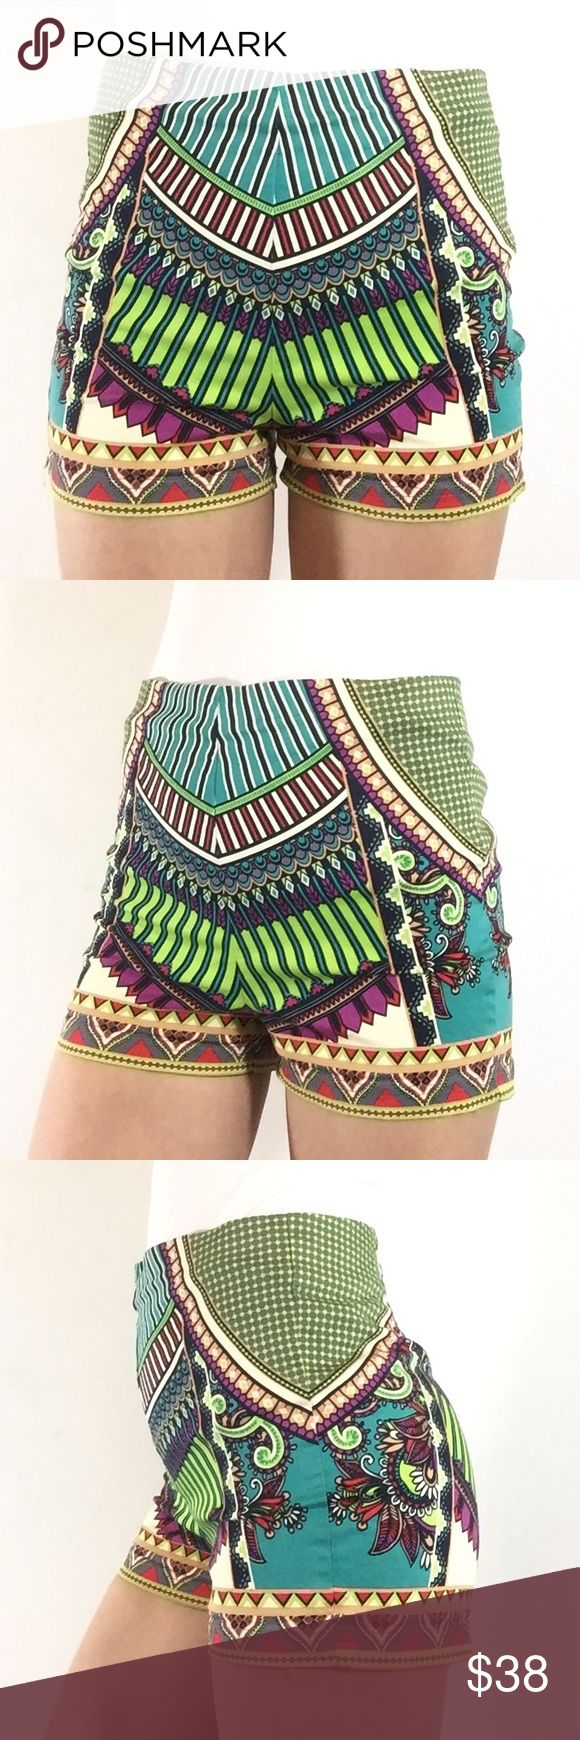 FLYING TOMATO TRIBAL AZTEC BOHO PRINT HOT SHORTS M ANTHROPOLOGY BRAND FLYING TOMATO HIGH WAISTED SHORTS WITH BEAUTIFUL TRIBAL AZTEC PRINT. SHORTS ZIP UP THE BACK AND ARE COMFY AND STRETCHY. BEAUTIFUL DESIGN. SIZE MEDIUM. PICTURES ARE OF THE ACTUAL ITEM BEING MODELED BY ME. Flying Tomato Shorts